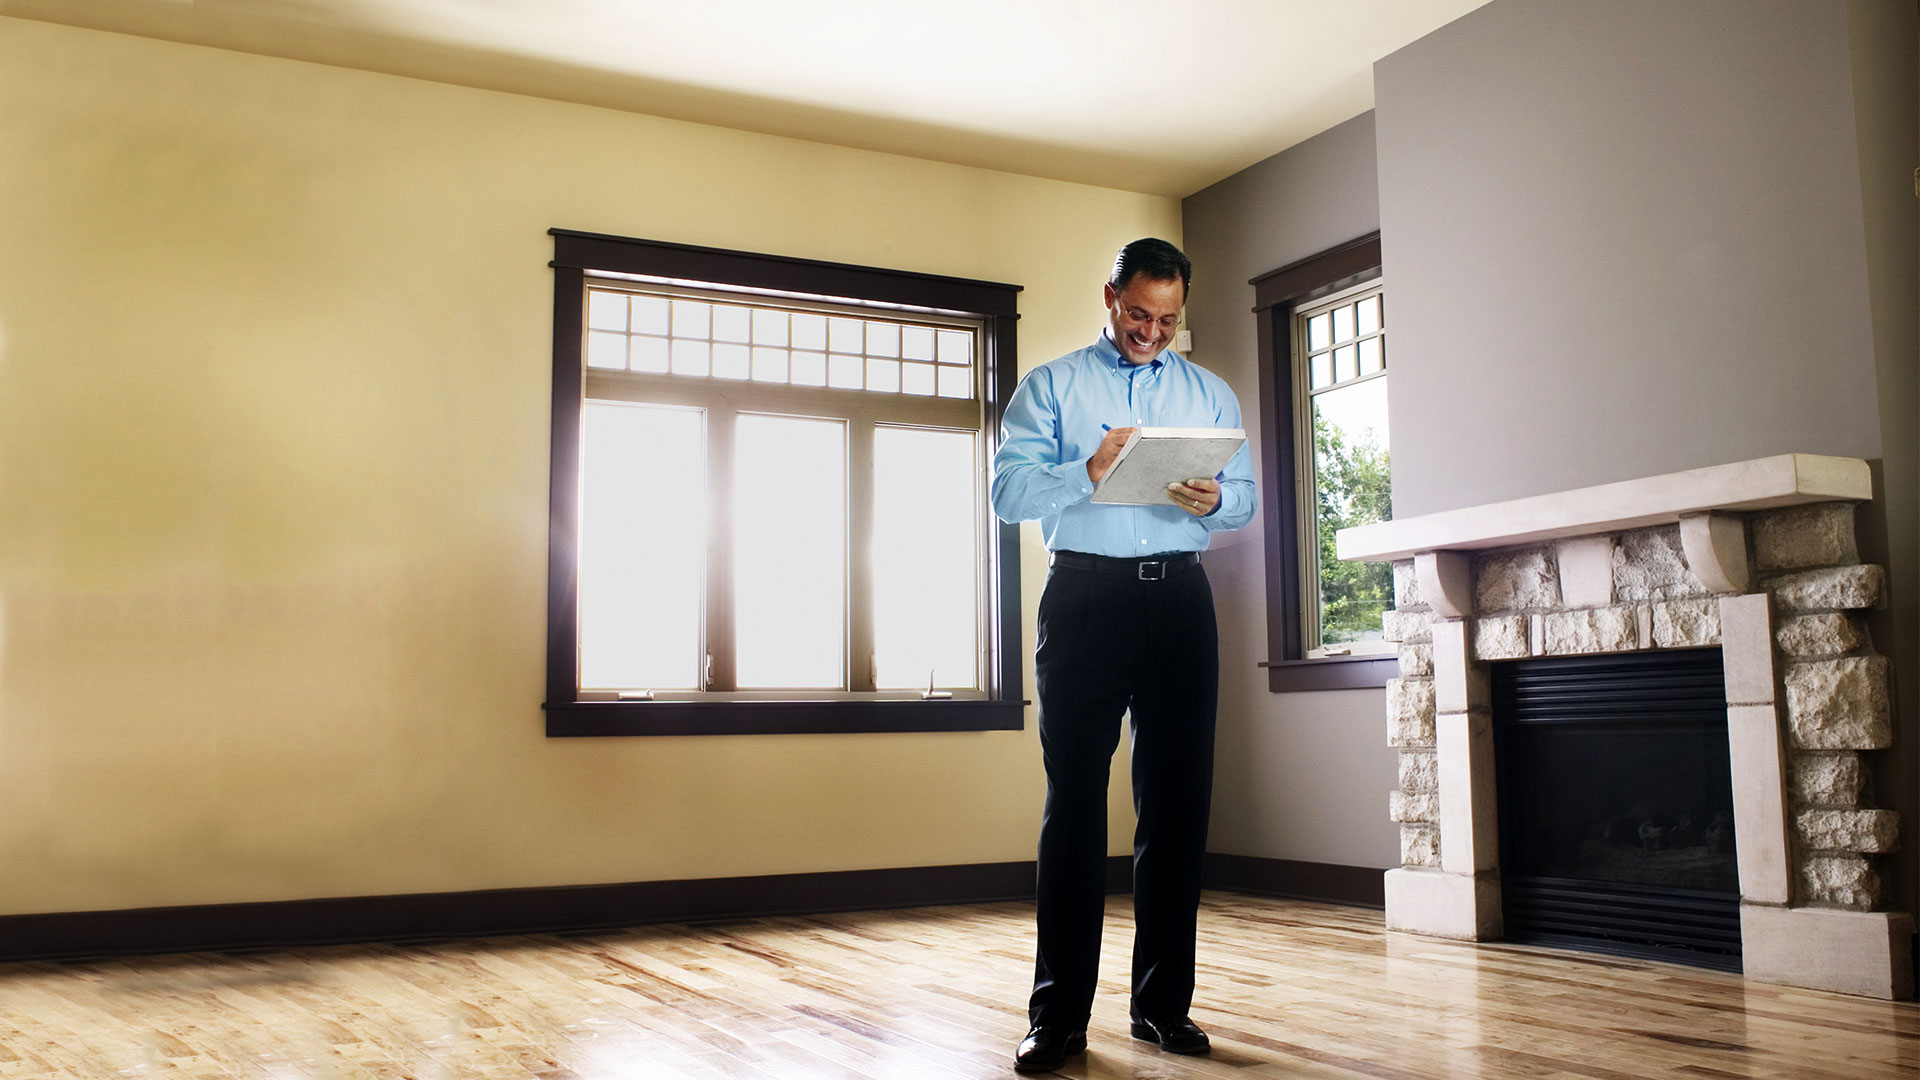 Comfort or Distress Your Choice with Best Home Inspection Services CT!